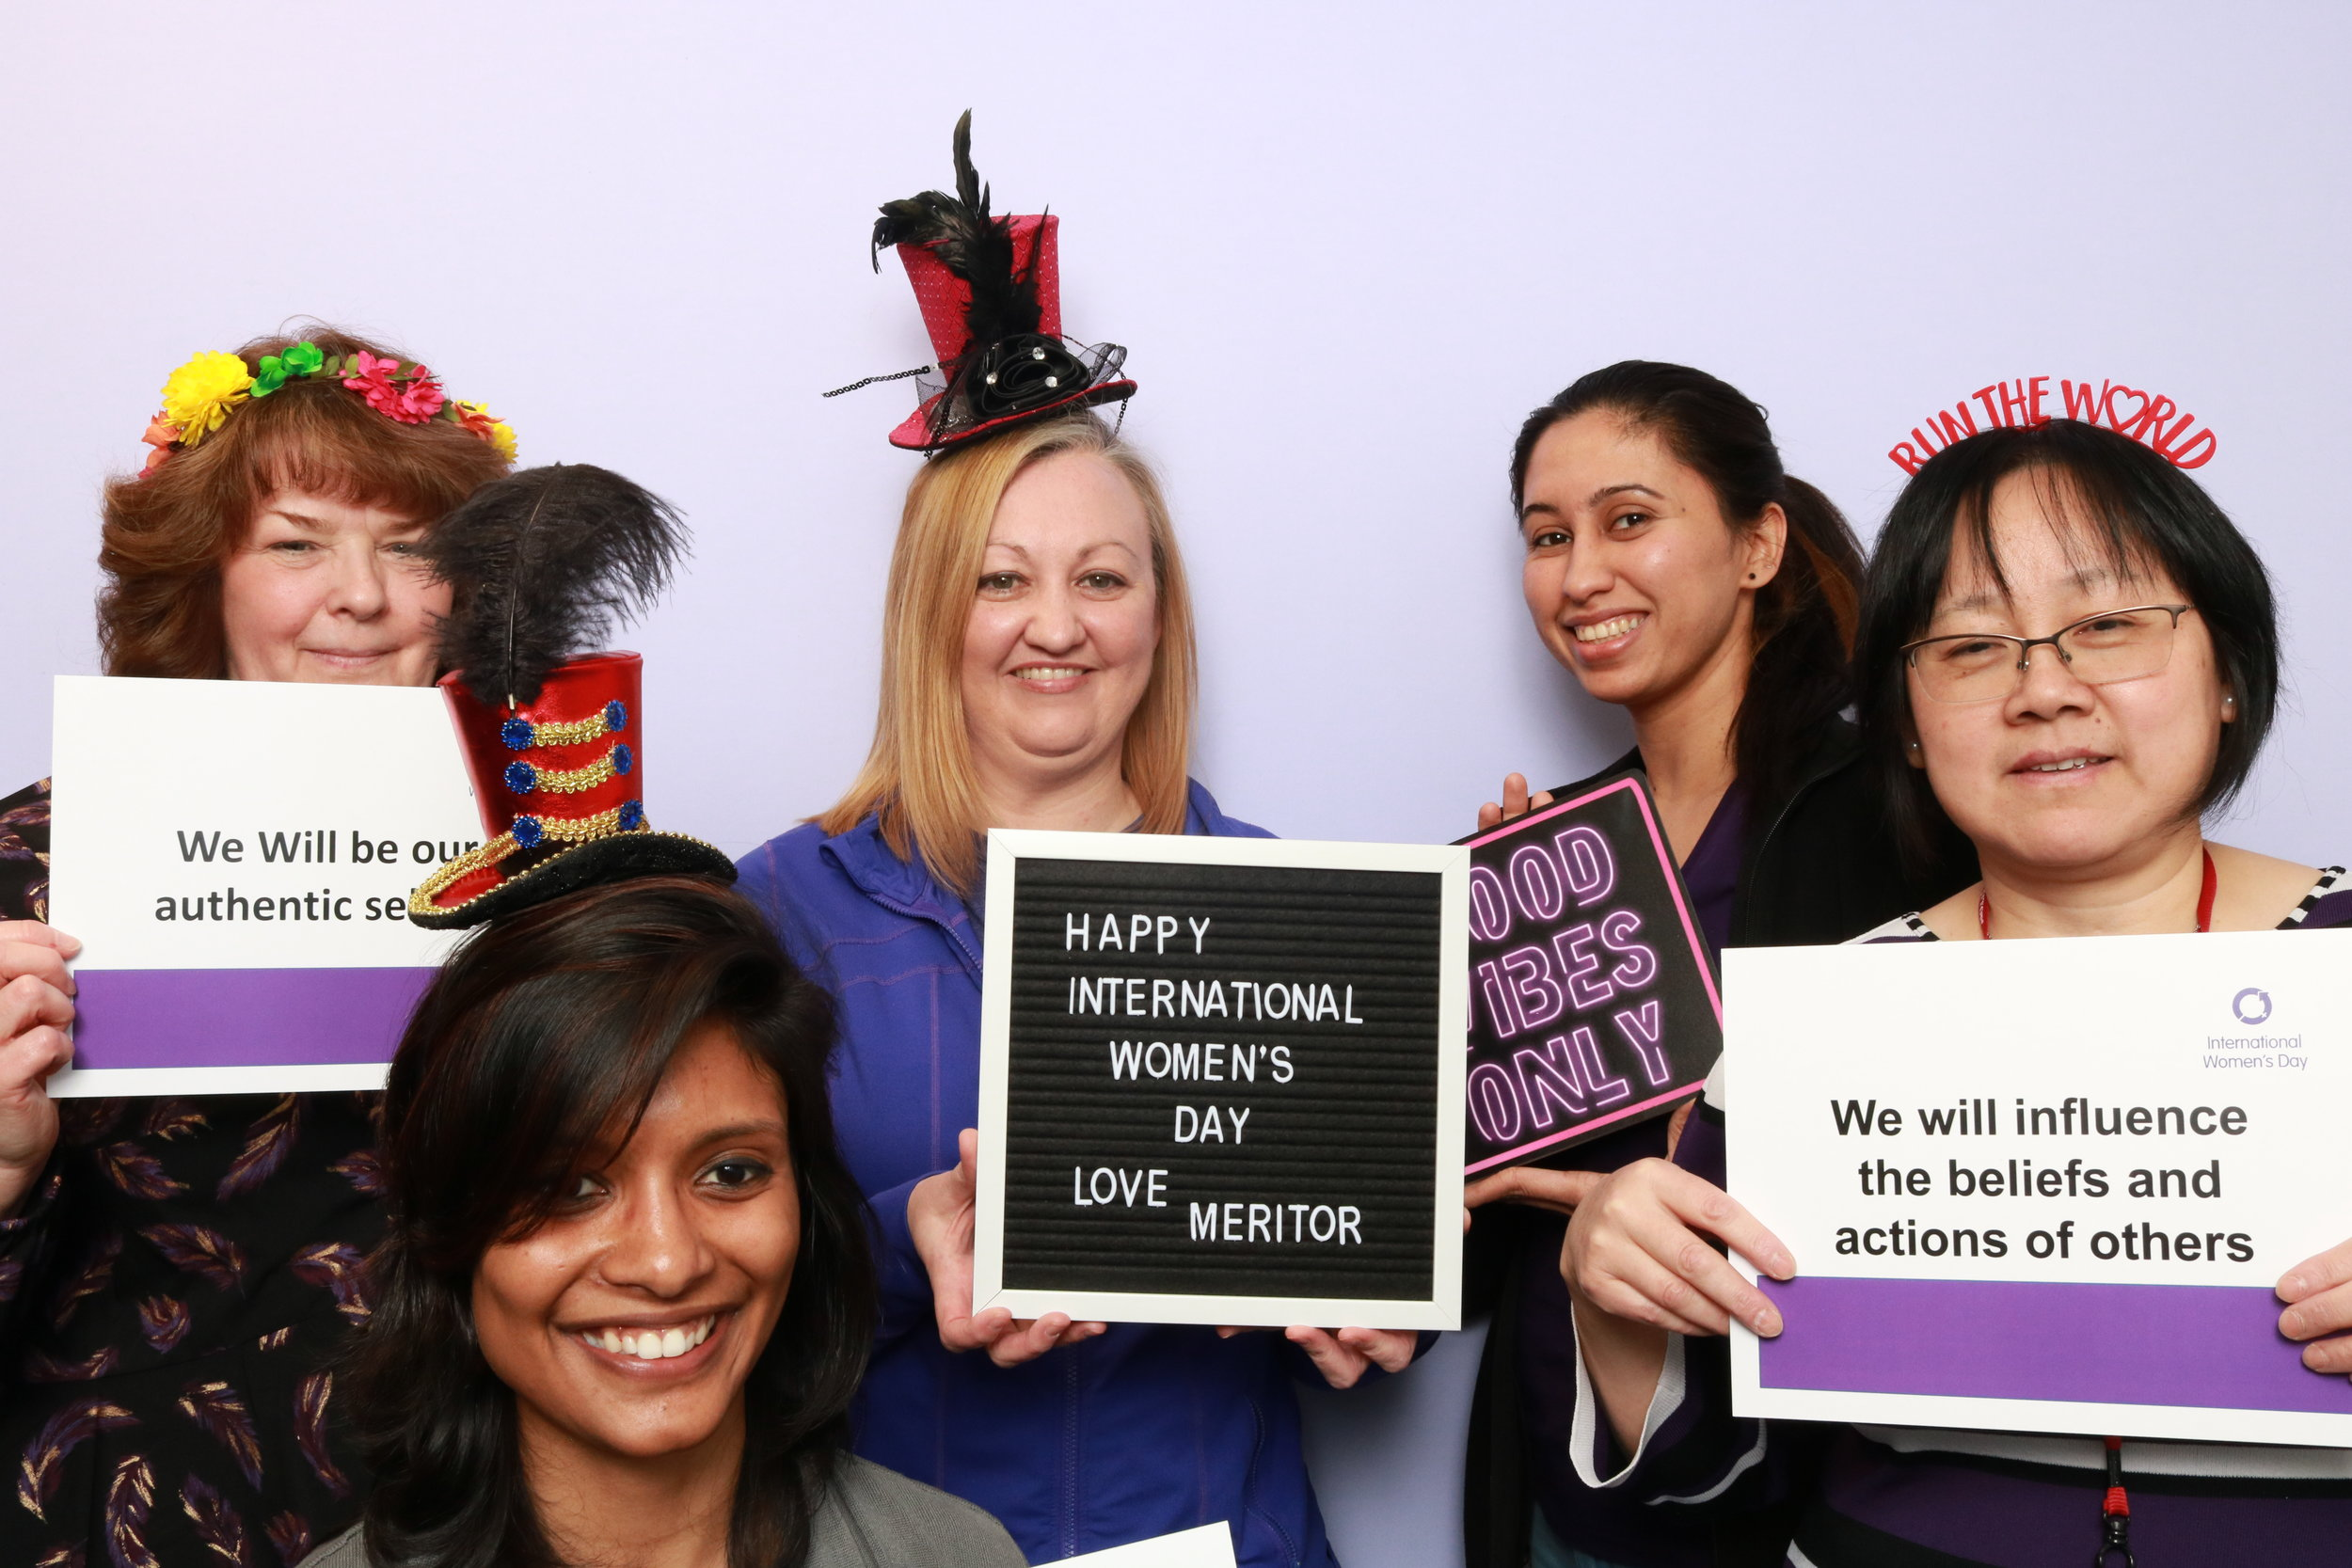 Meritor's International Women's Day Lunch